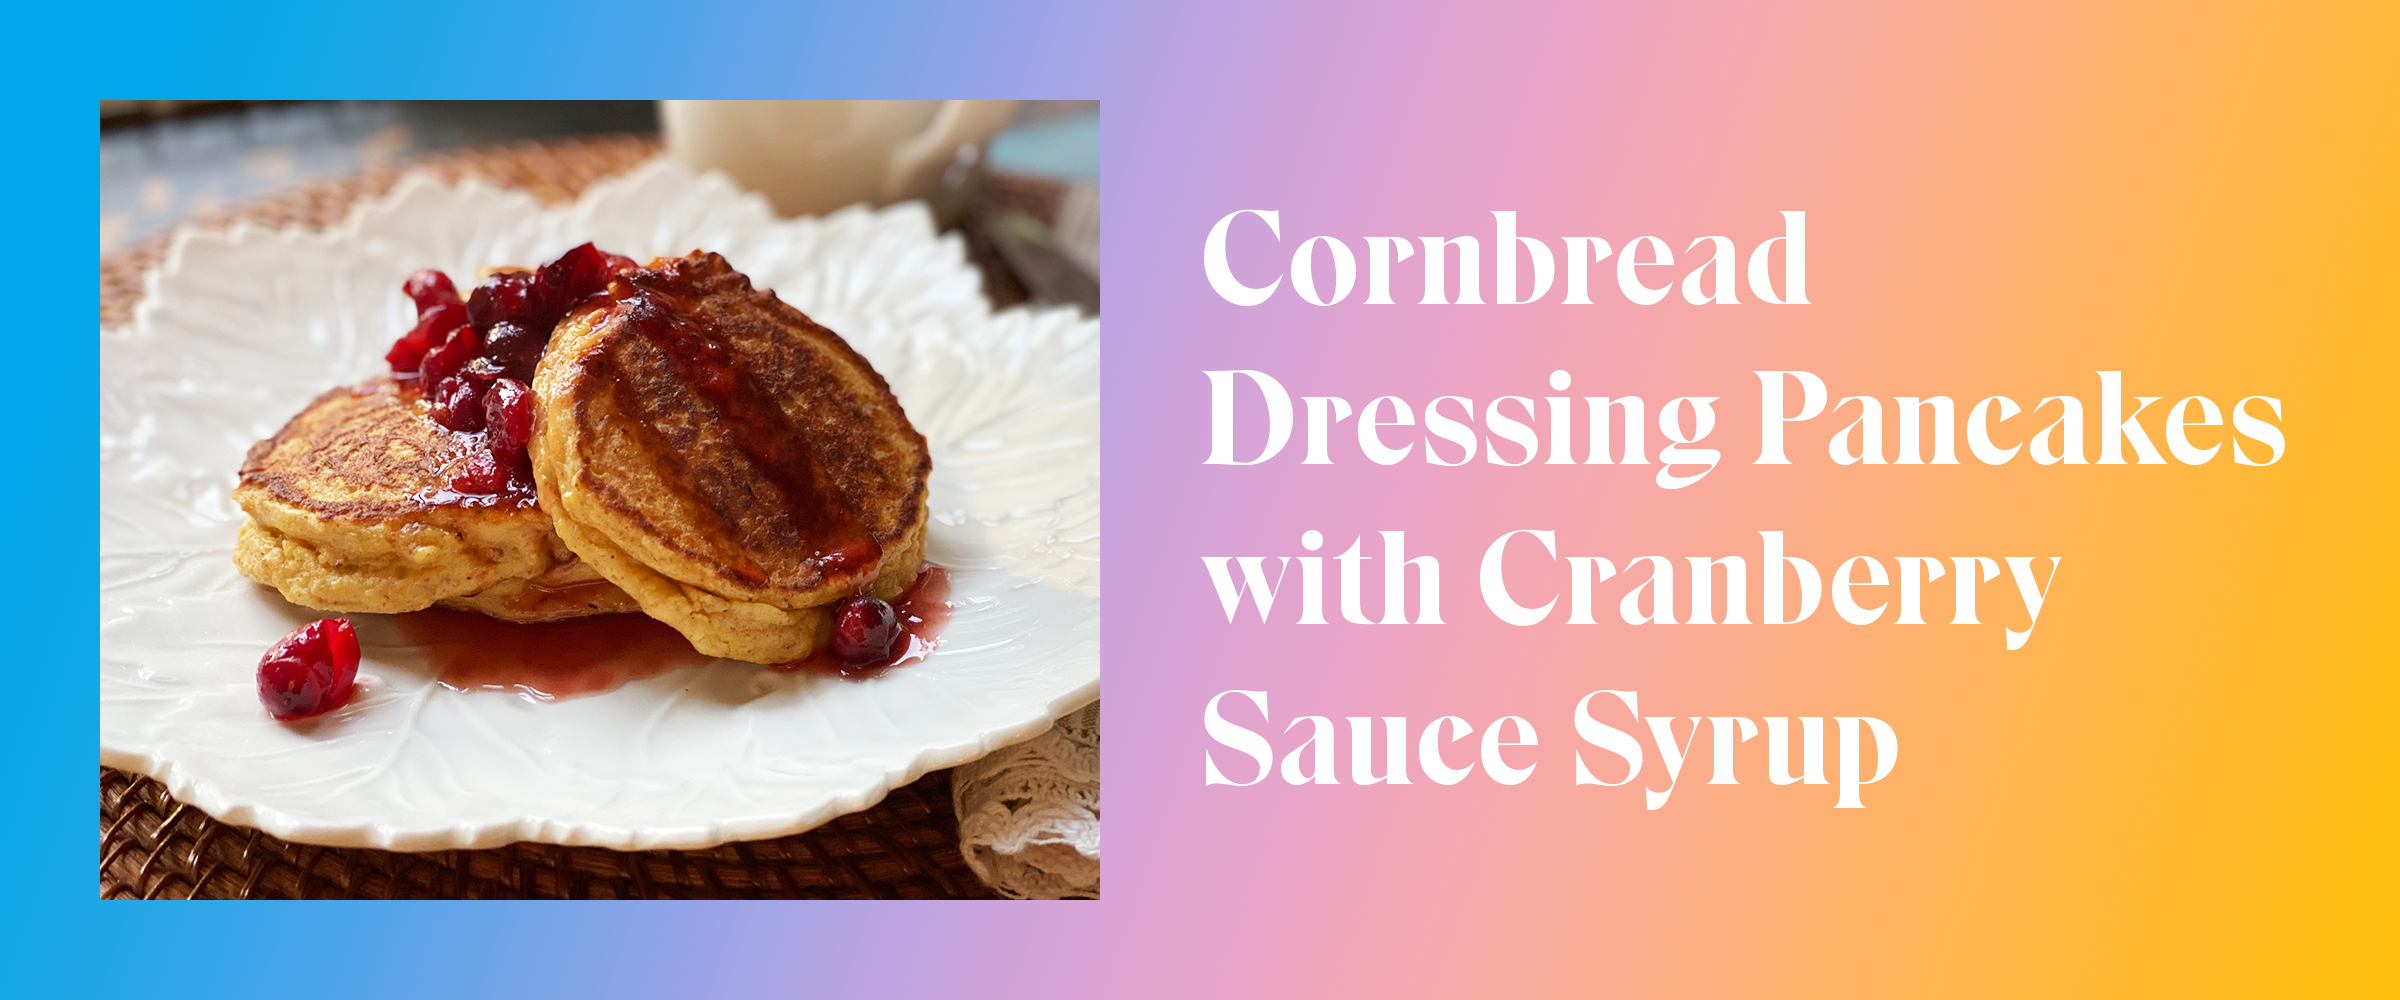 Cornbread Dressing Pancakes with Cranberry Sauce Syrup